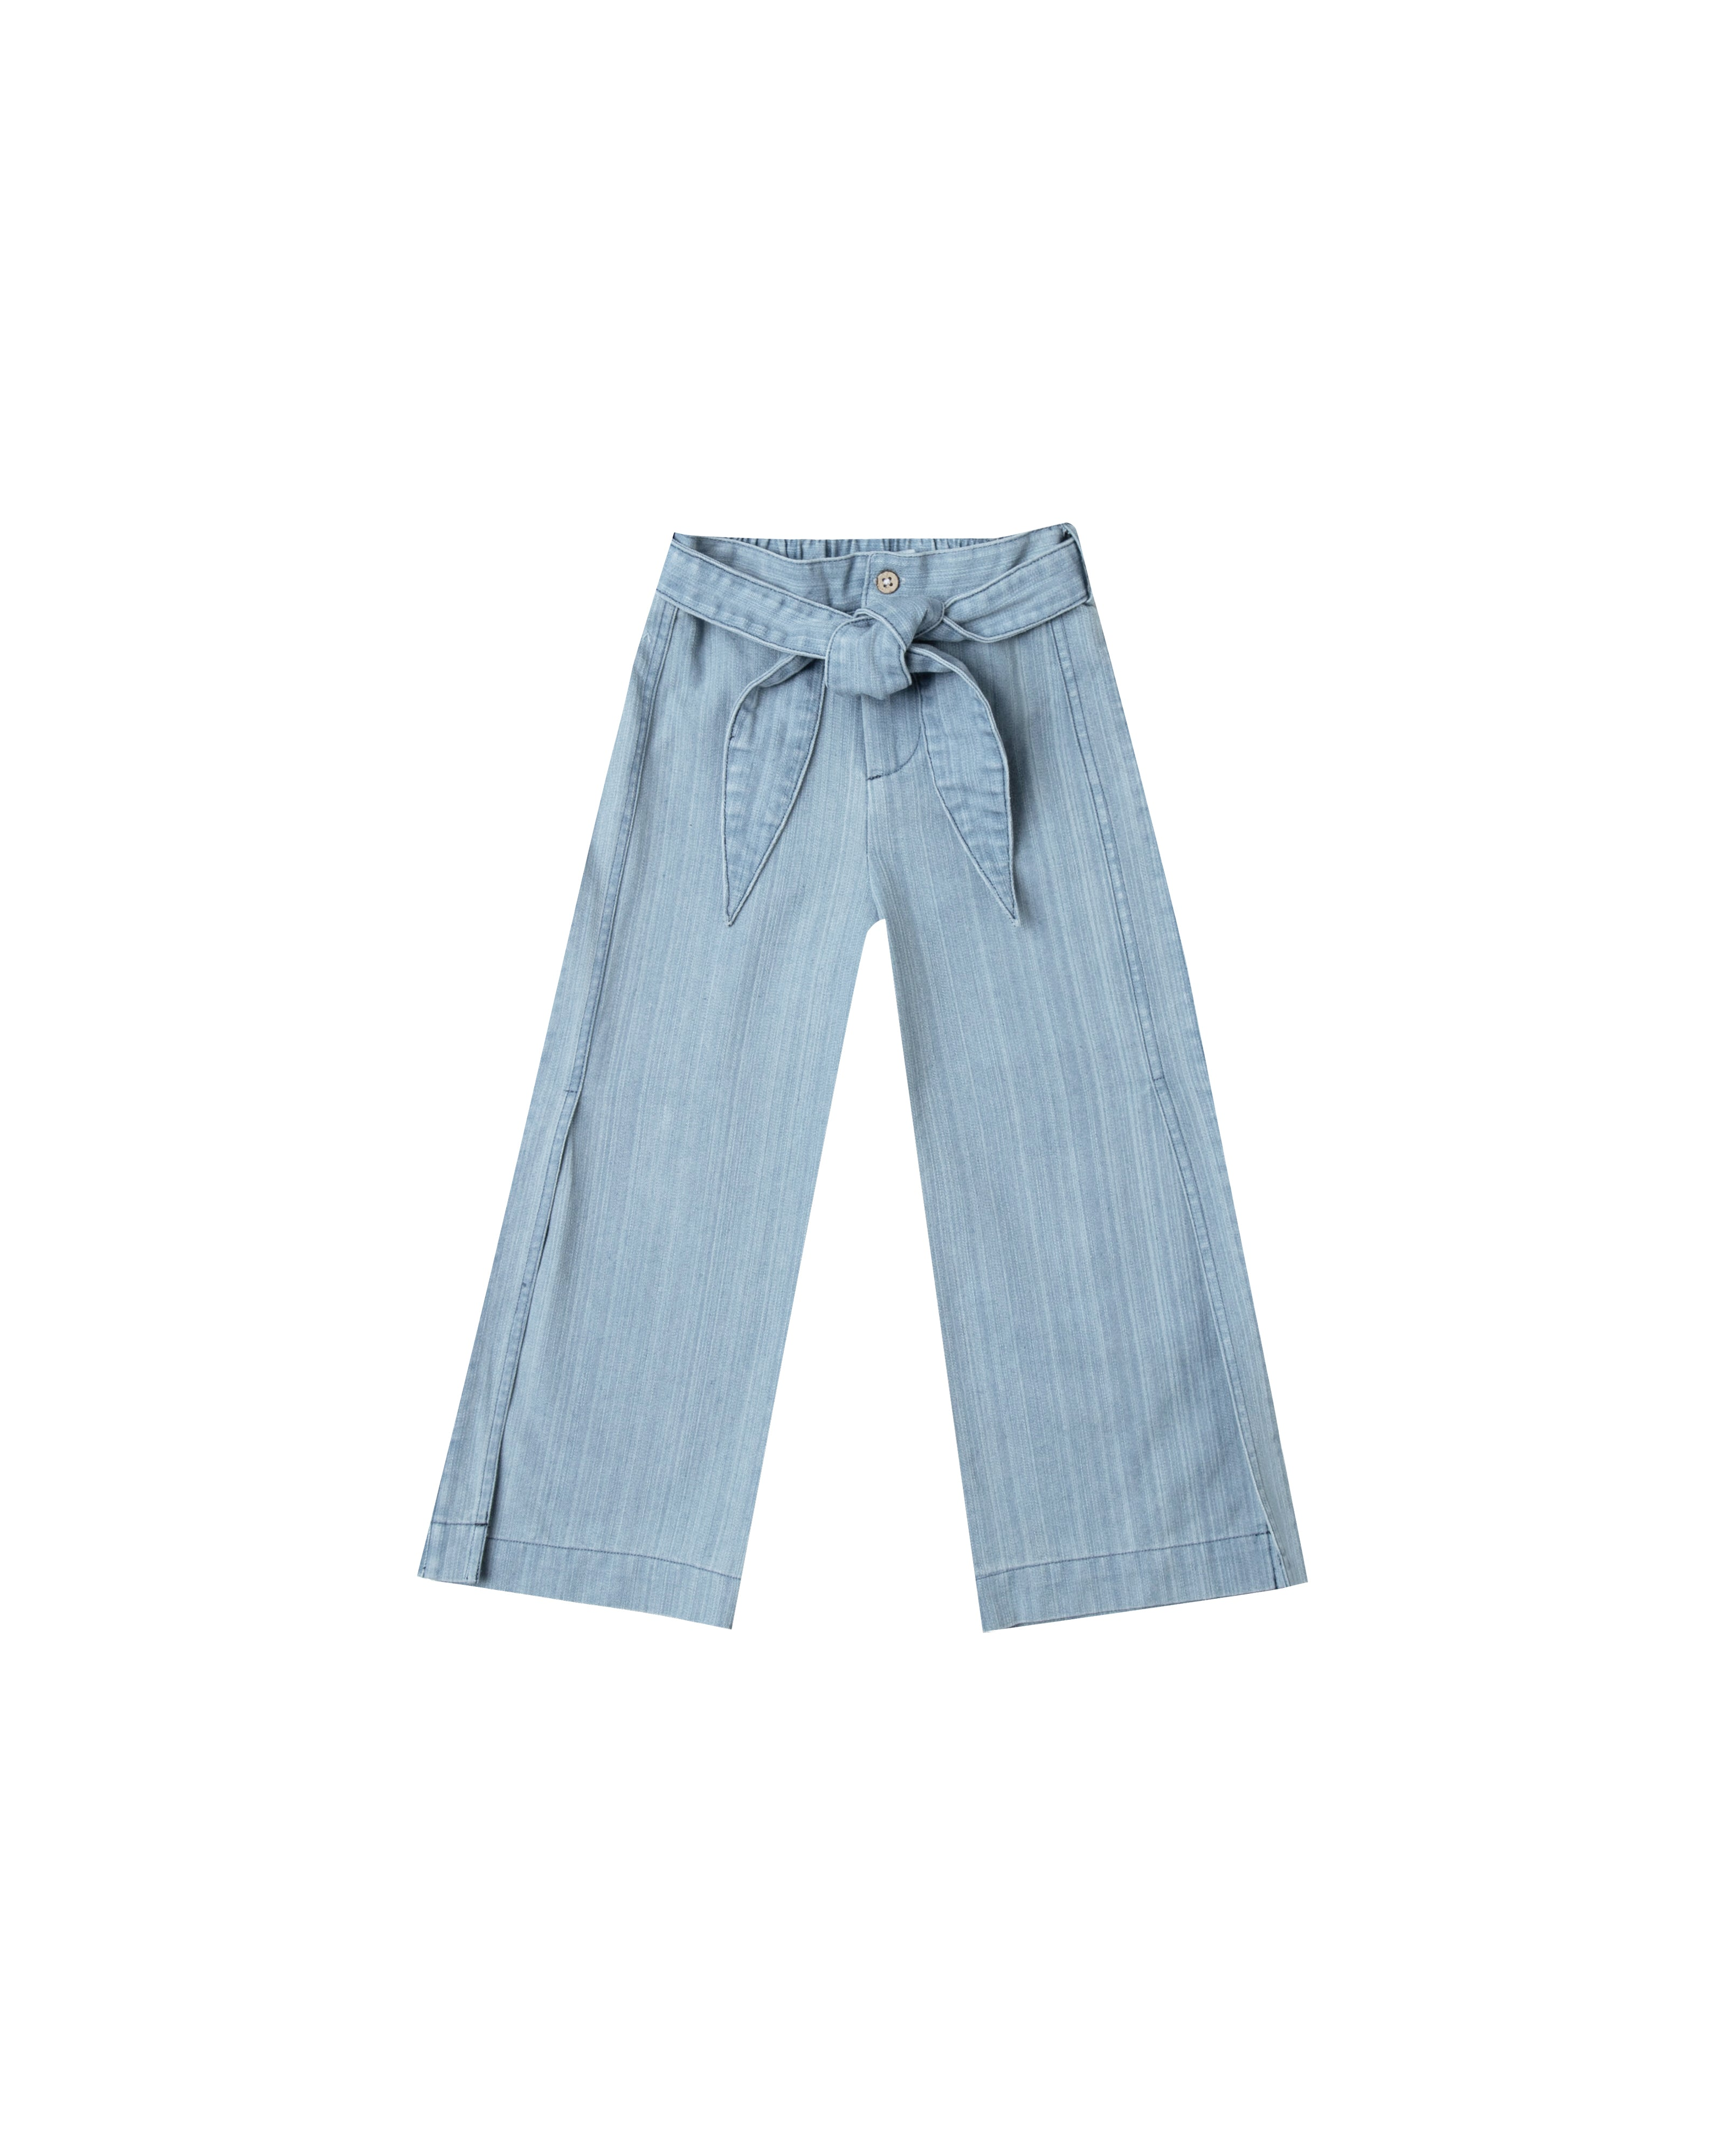 Wide Leg Pant in Washed Denim